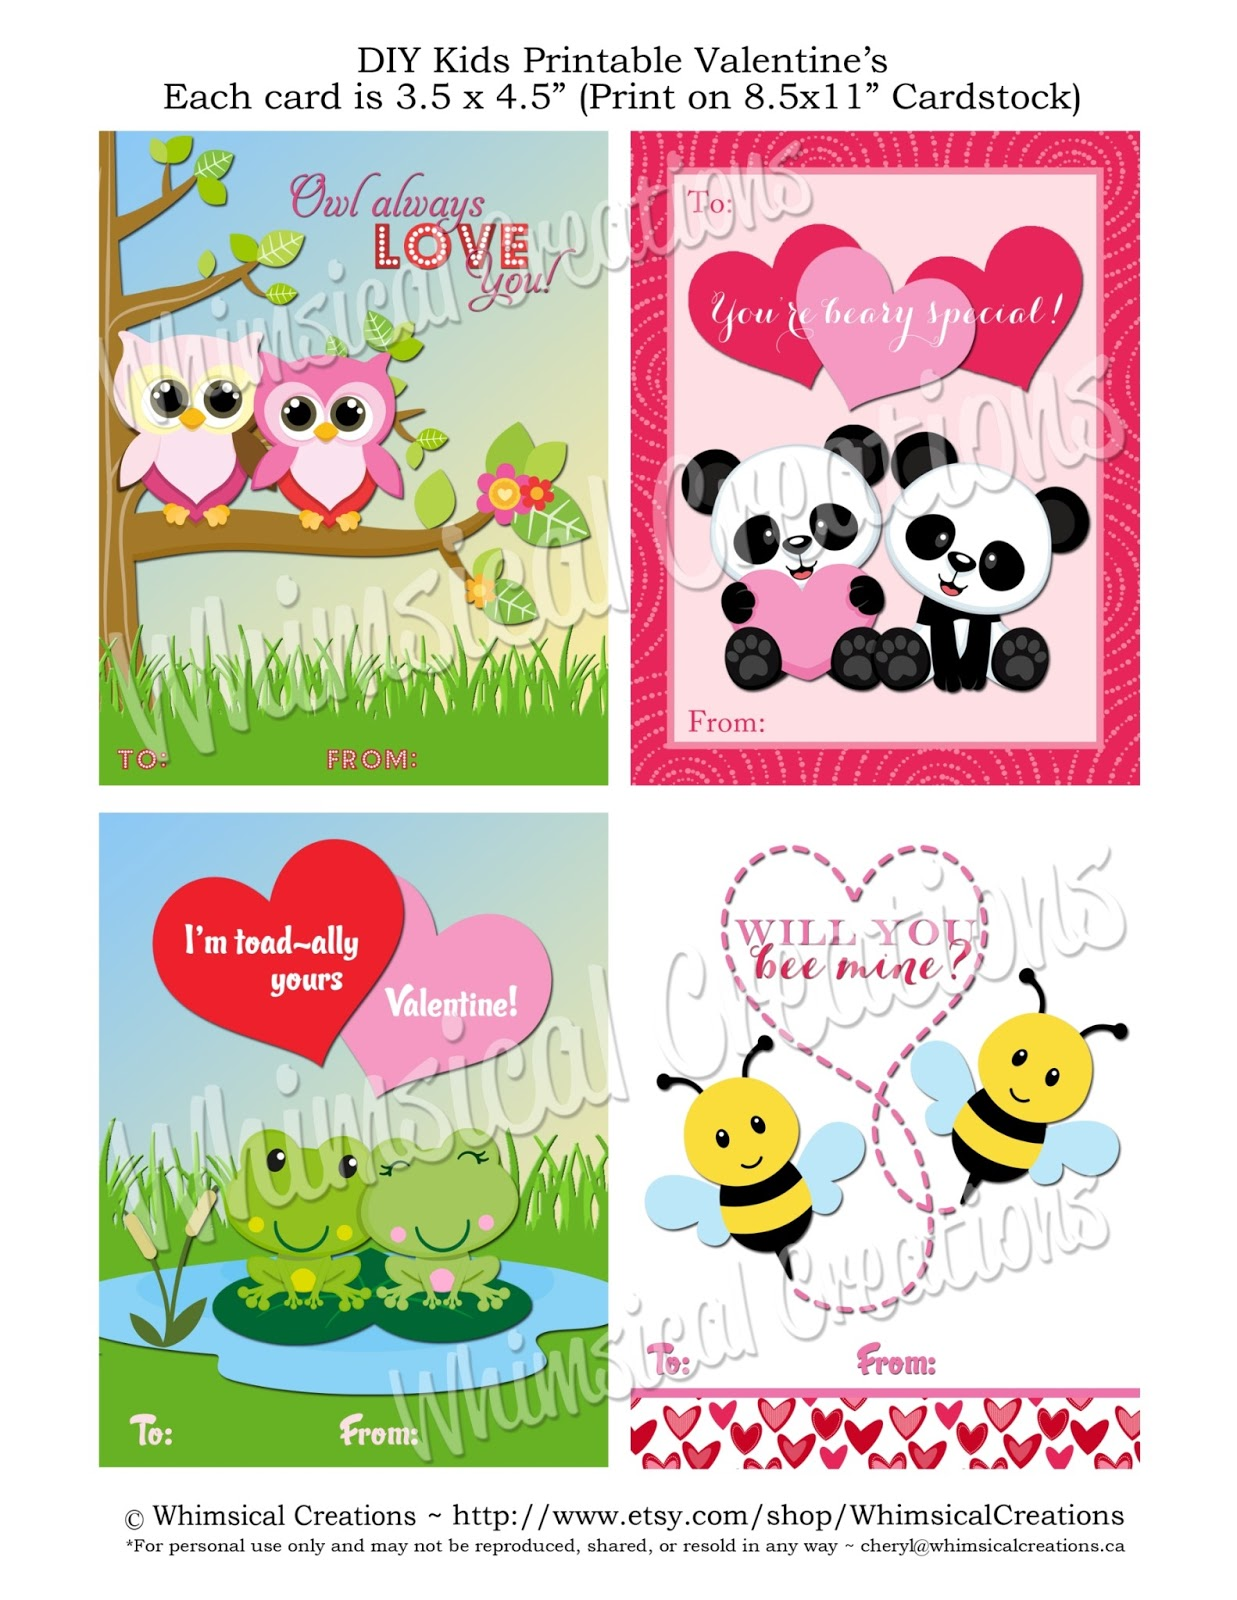 Doc462600 Cute Kids Valentines Cards BBC news Europa – Valentines Cards Print